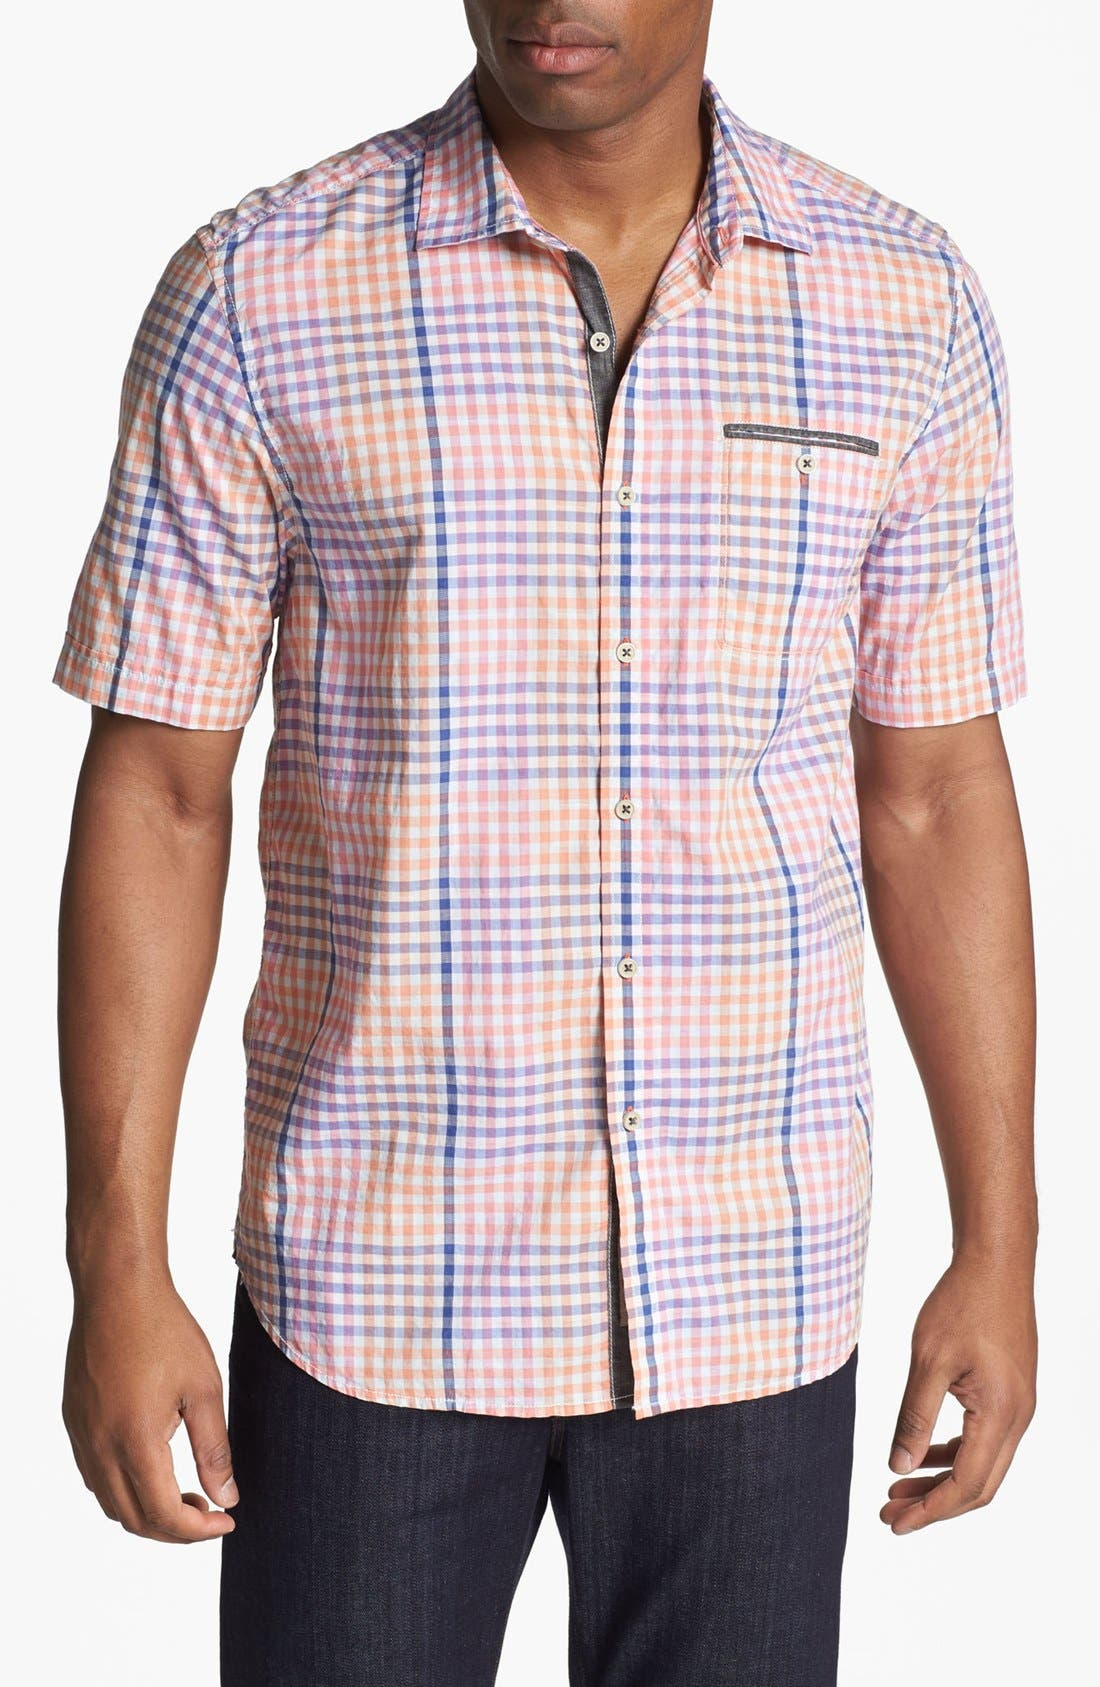 Main Image - Tommy Bahama 'United Gingham' Short Sleeve Sport Shirt